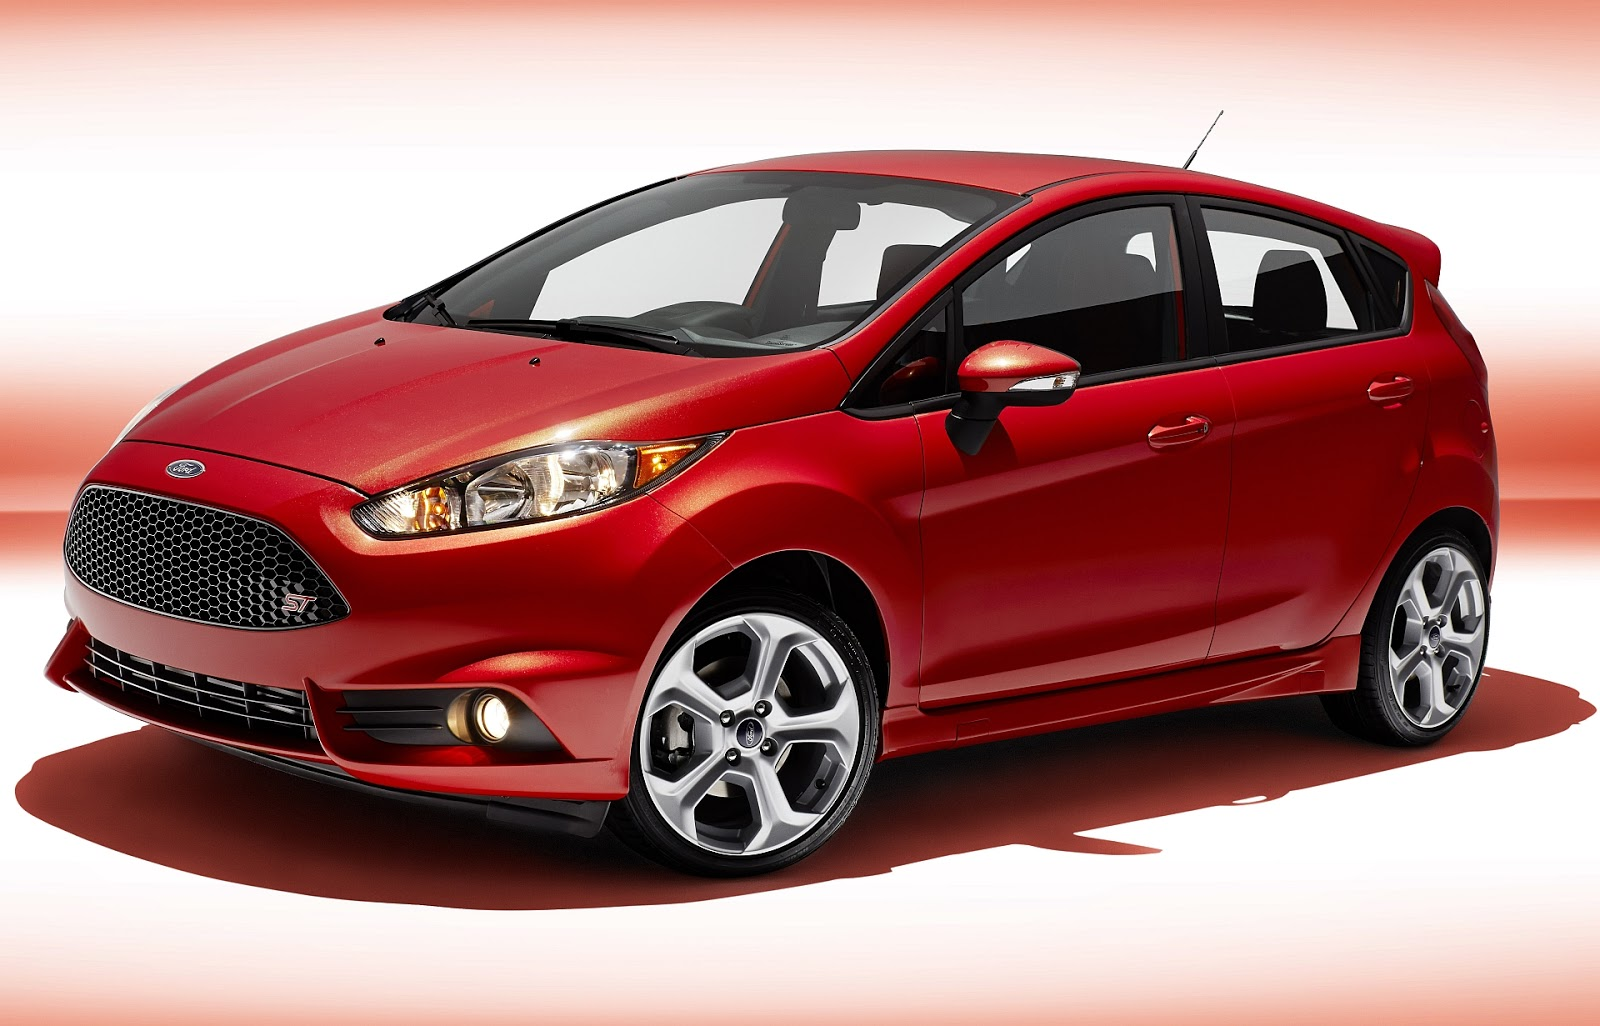 Ford Fiesta New Model Latest Cars Models Ford Fiesta 2013